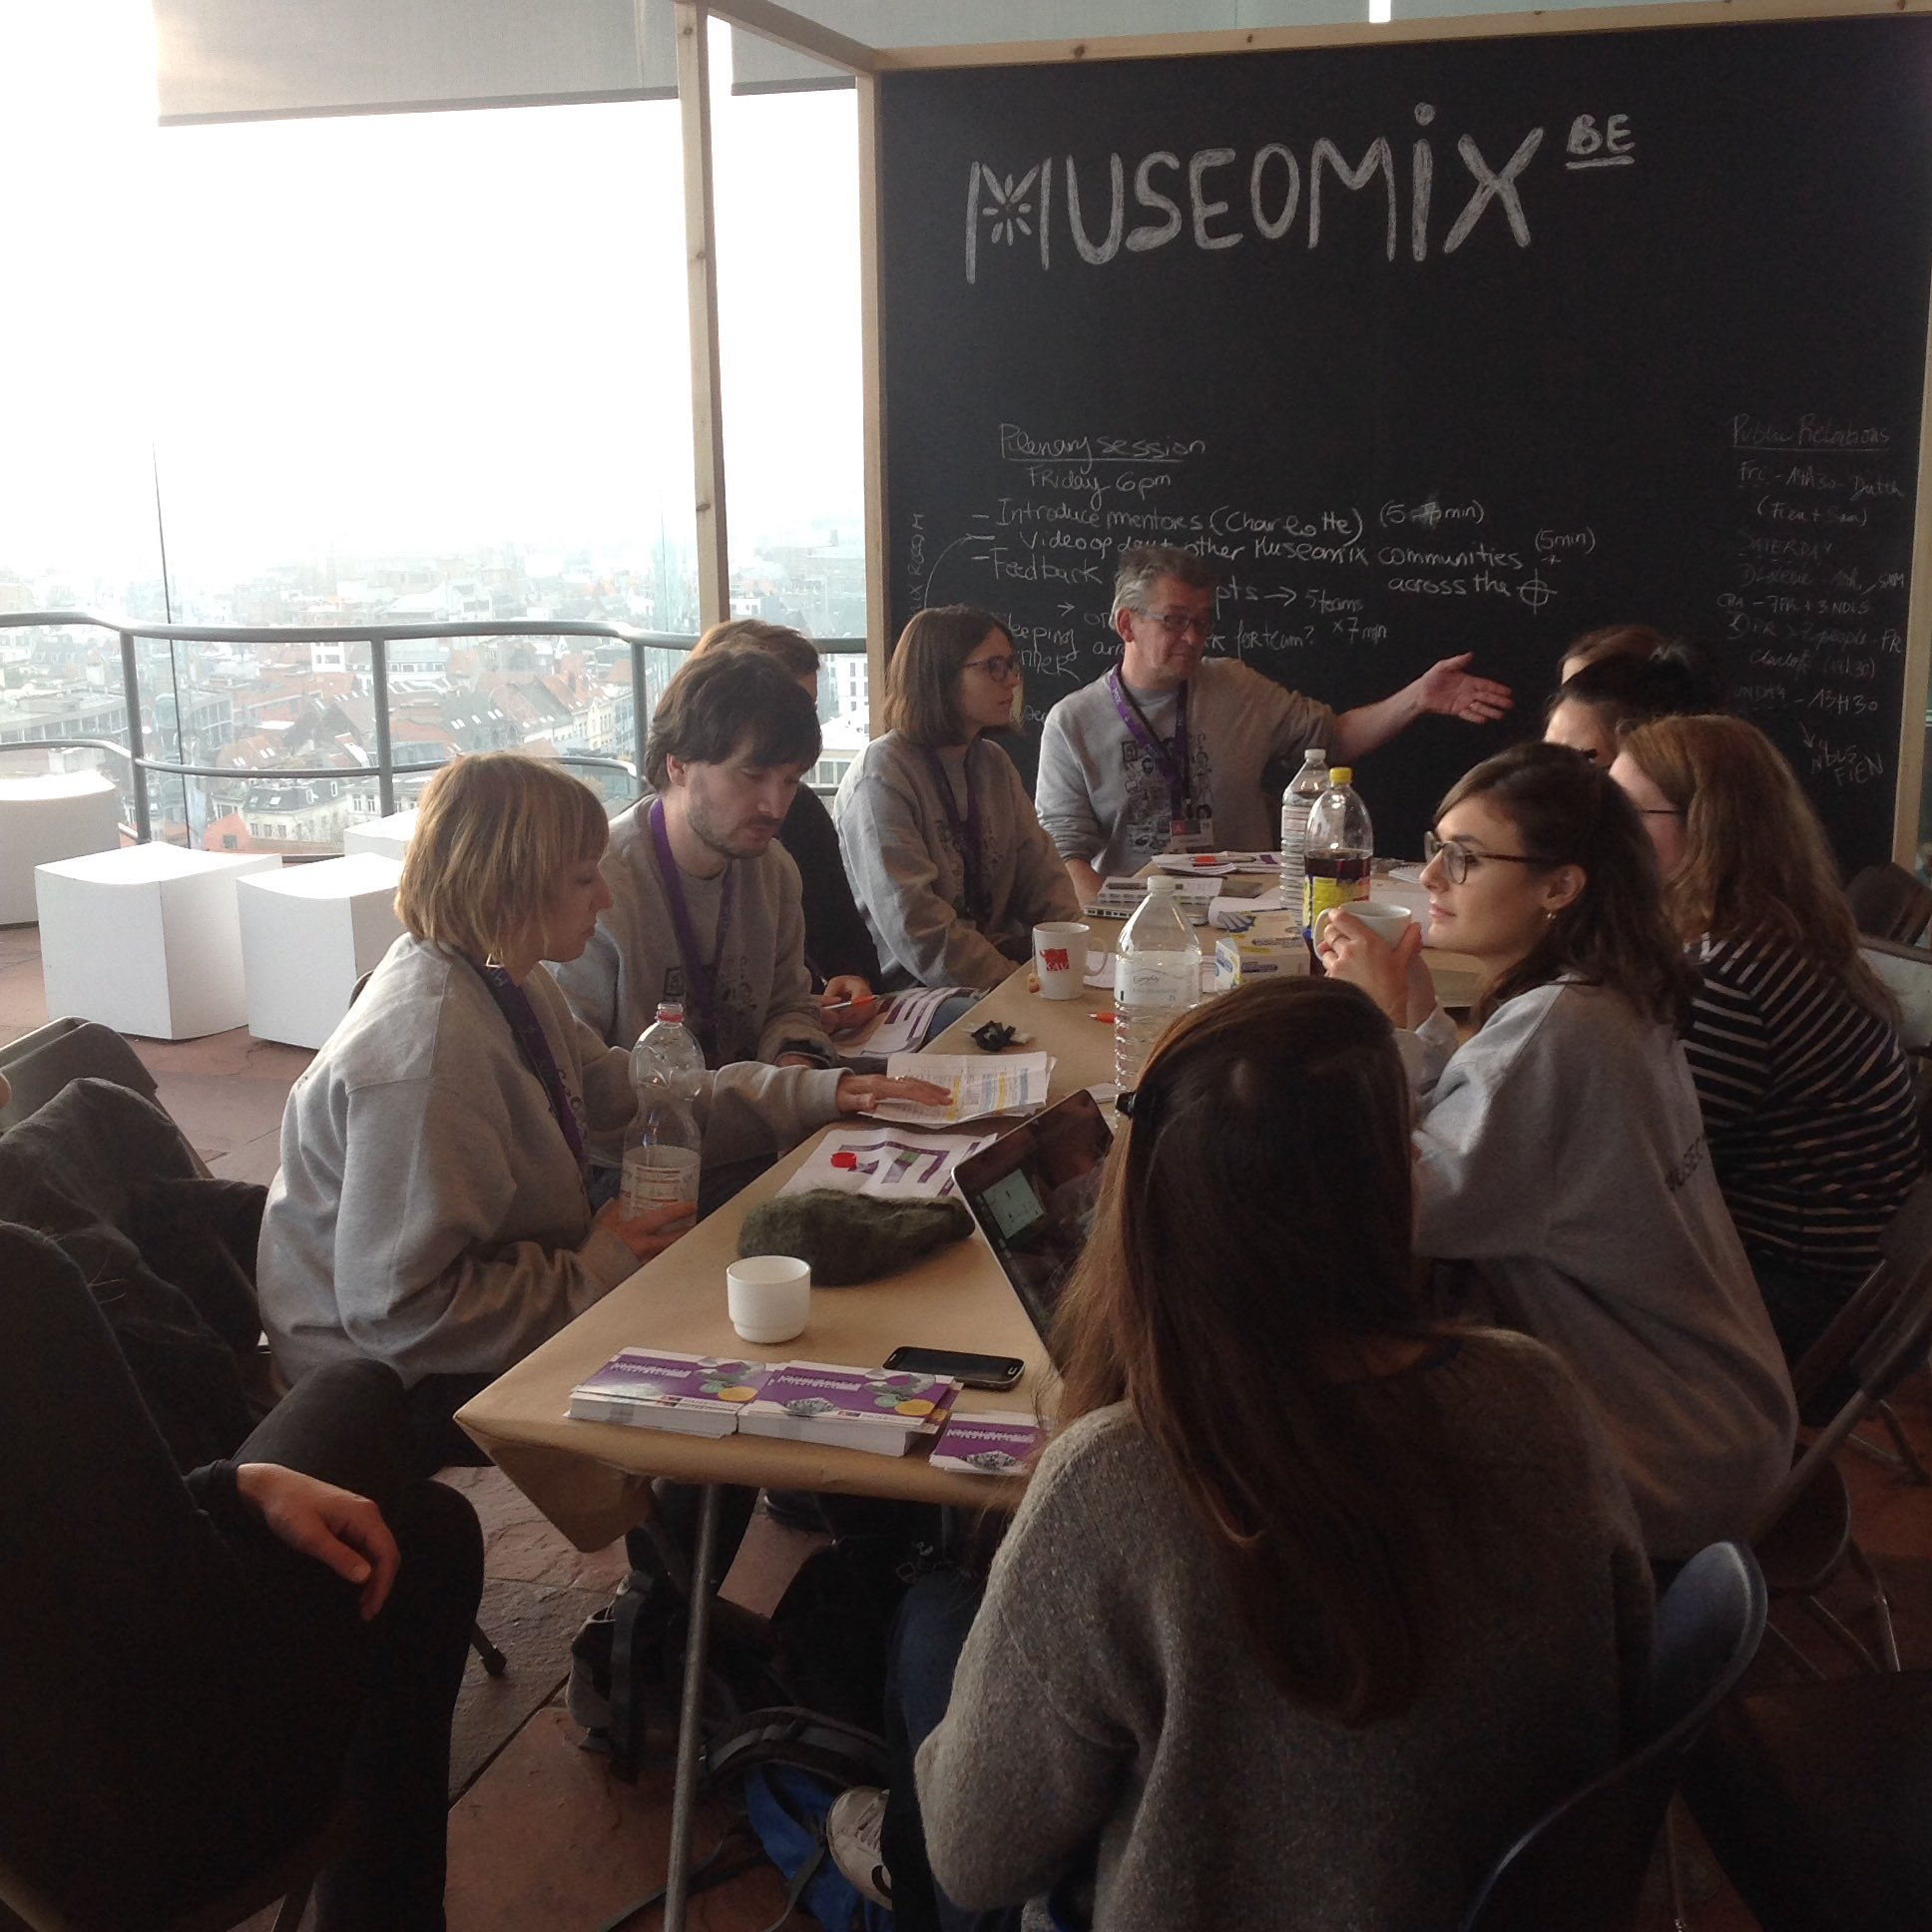 #Museomix16 day 2: #MuseomixBE is well-rested and hungry for now challenges. How about you guys? https://t.co/g971KUoM3F